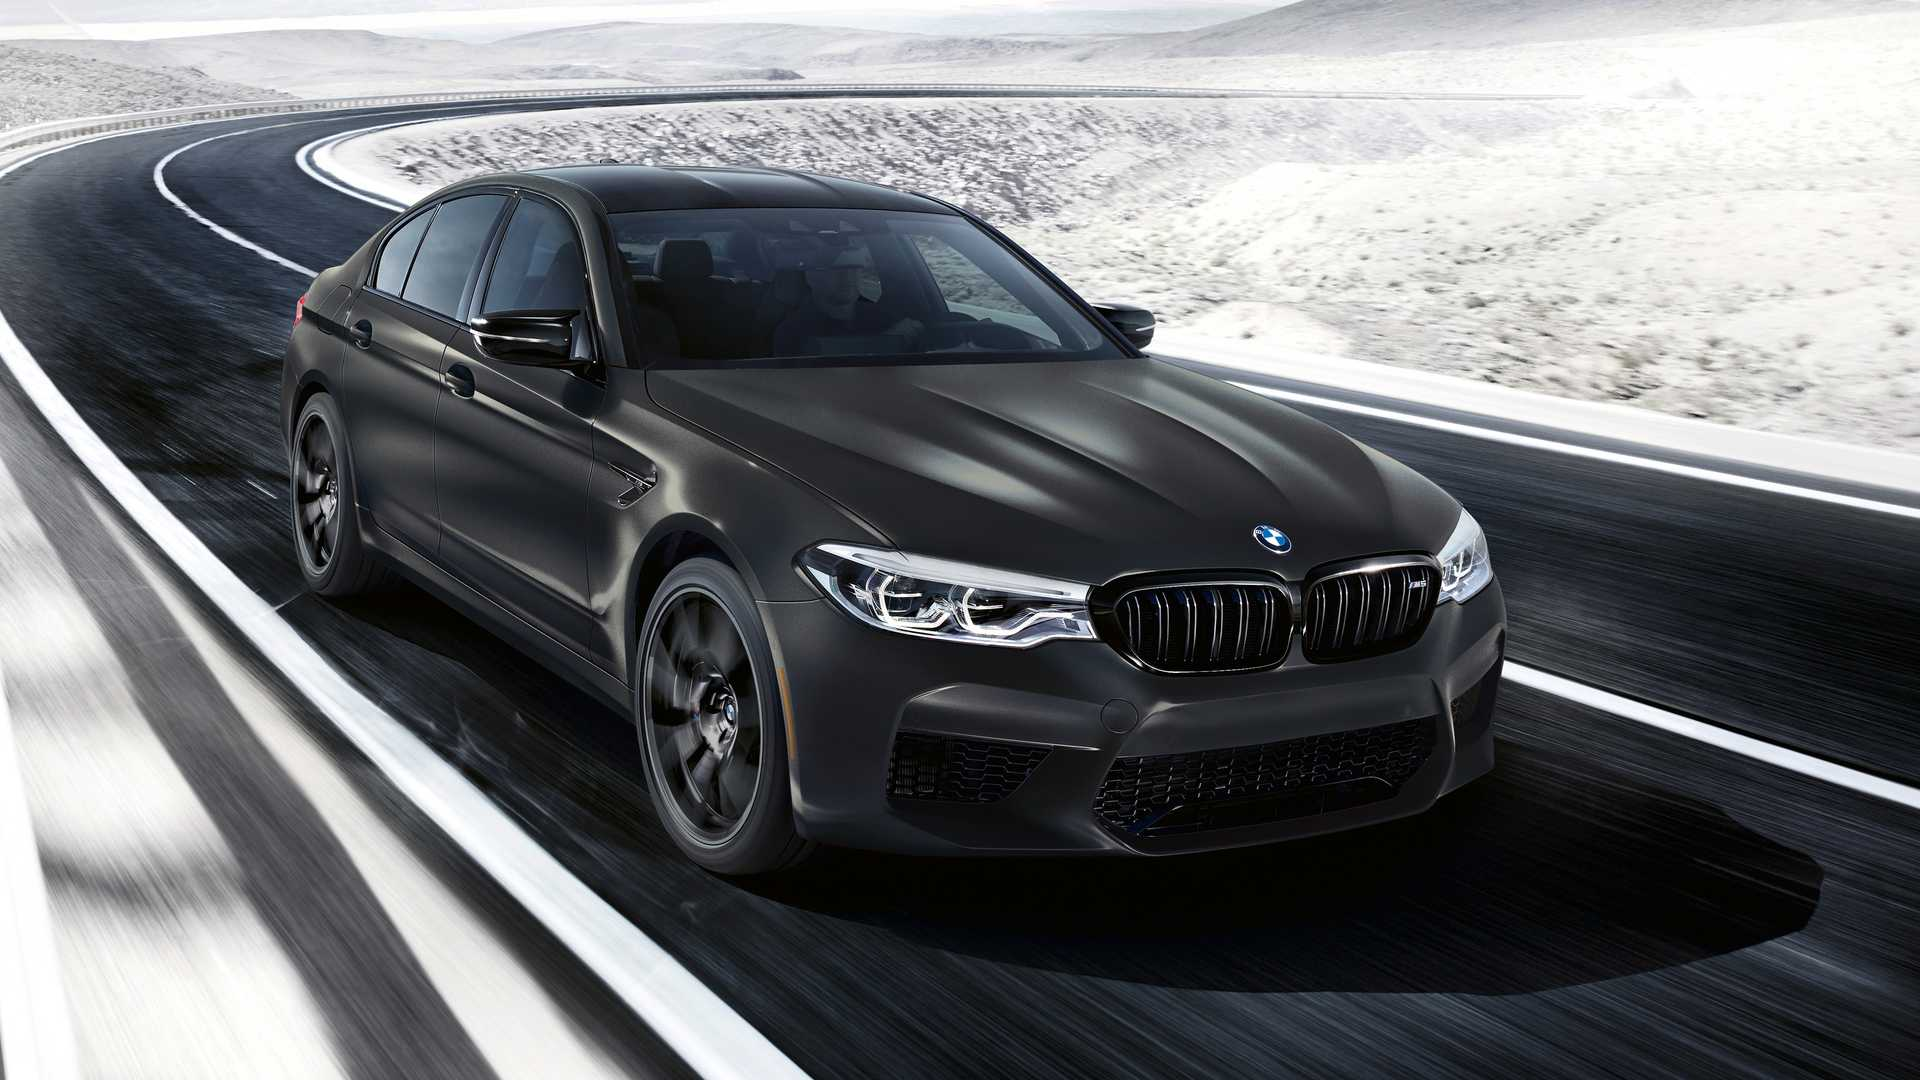 18 New Bmw M5 2020 Price and Review with Bmw M5 2020